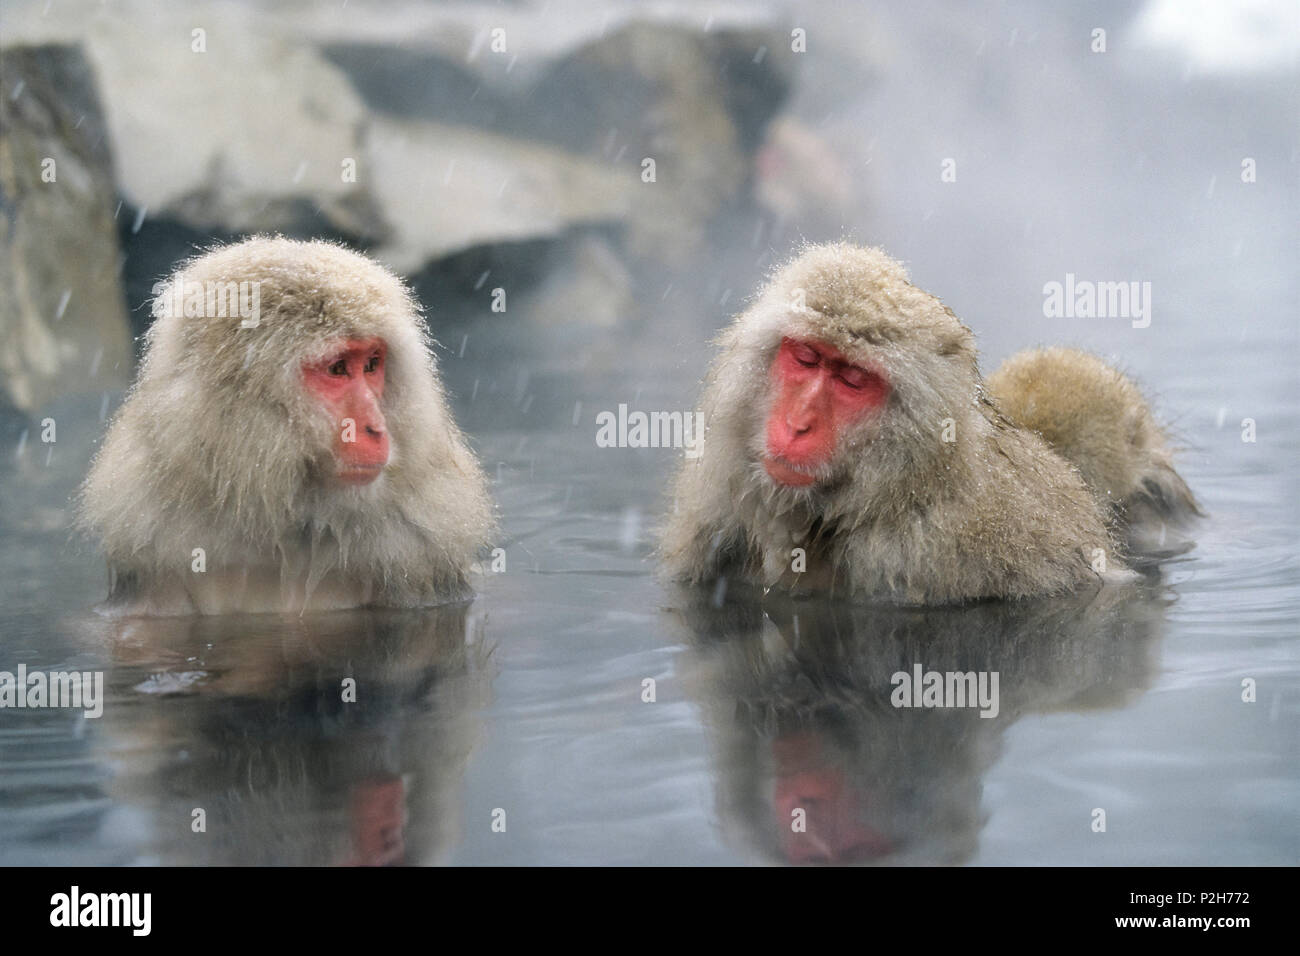 Snowmonkeys, Japanese Macaques in hot spring, Macaca fuscata, Japanese Alps, Japan - Stock Image